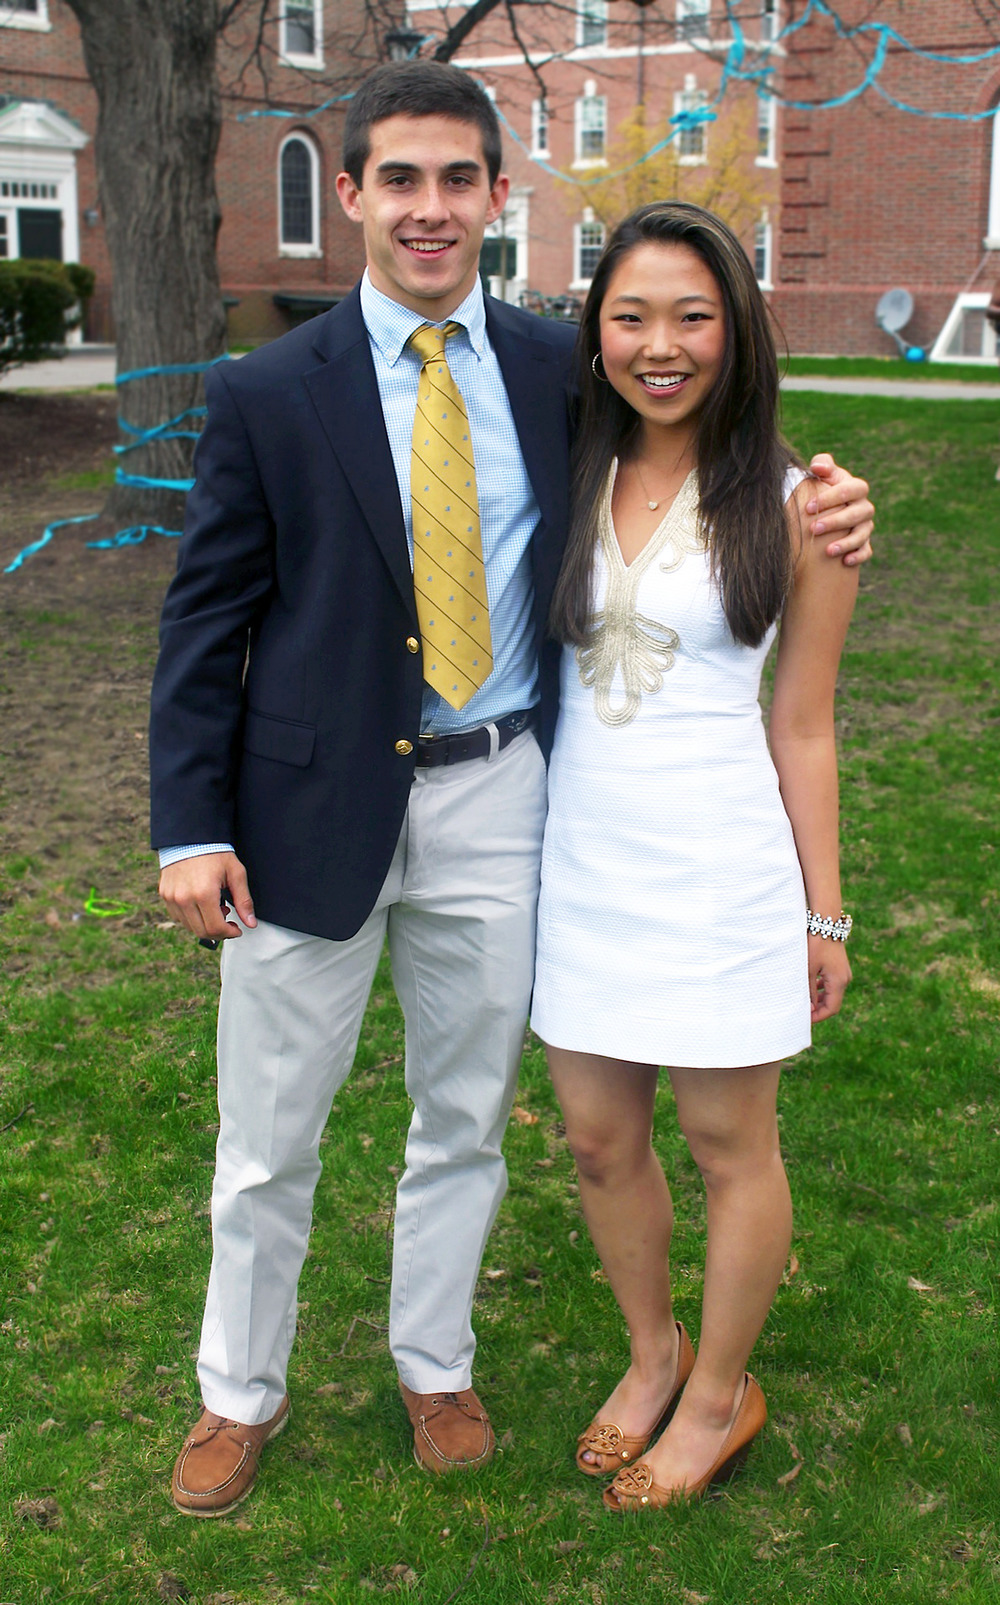 Lexi '14 | Phillips Exeter Academy  White Textured Dress with Gold Embroidered Trim  Tory Burch Peep Toe Heels in Brown/Nude     Luke '14 | Phillips Exeter Academy  Navy Blue Blazer with Gold Buttons  White & Blue Gingham Shirt  Yellow Tie with Black Repp Stripes  Khakis  Brown Boat Shoes